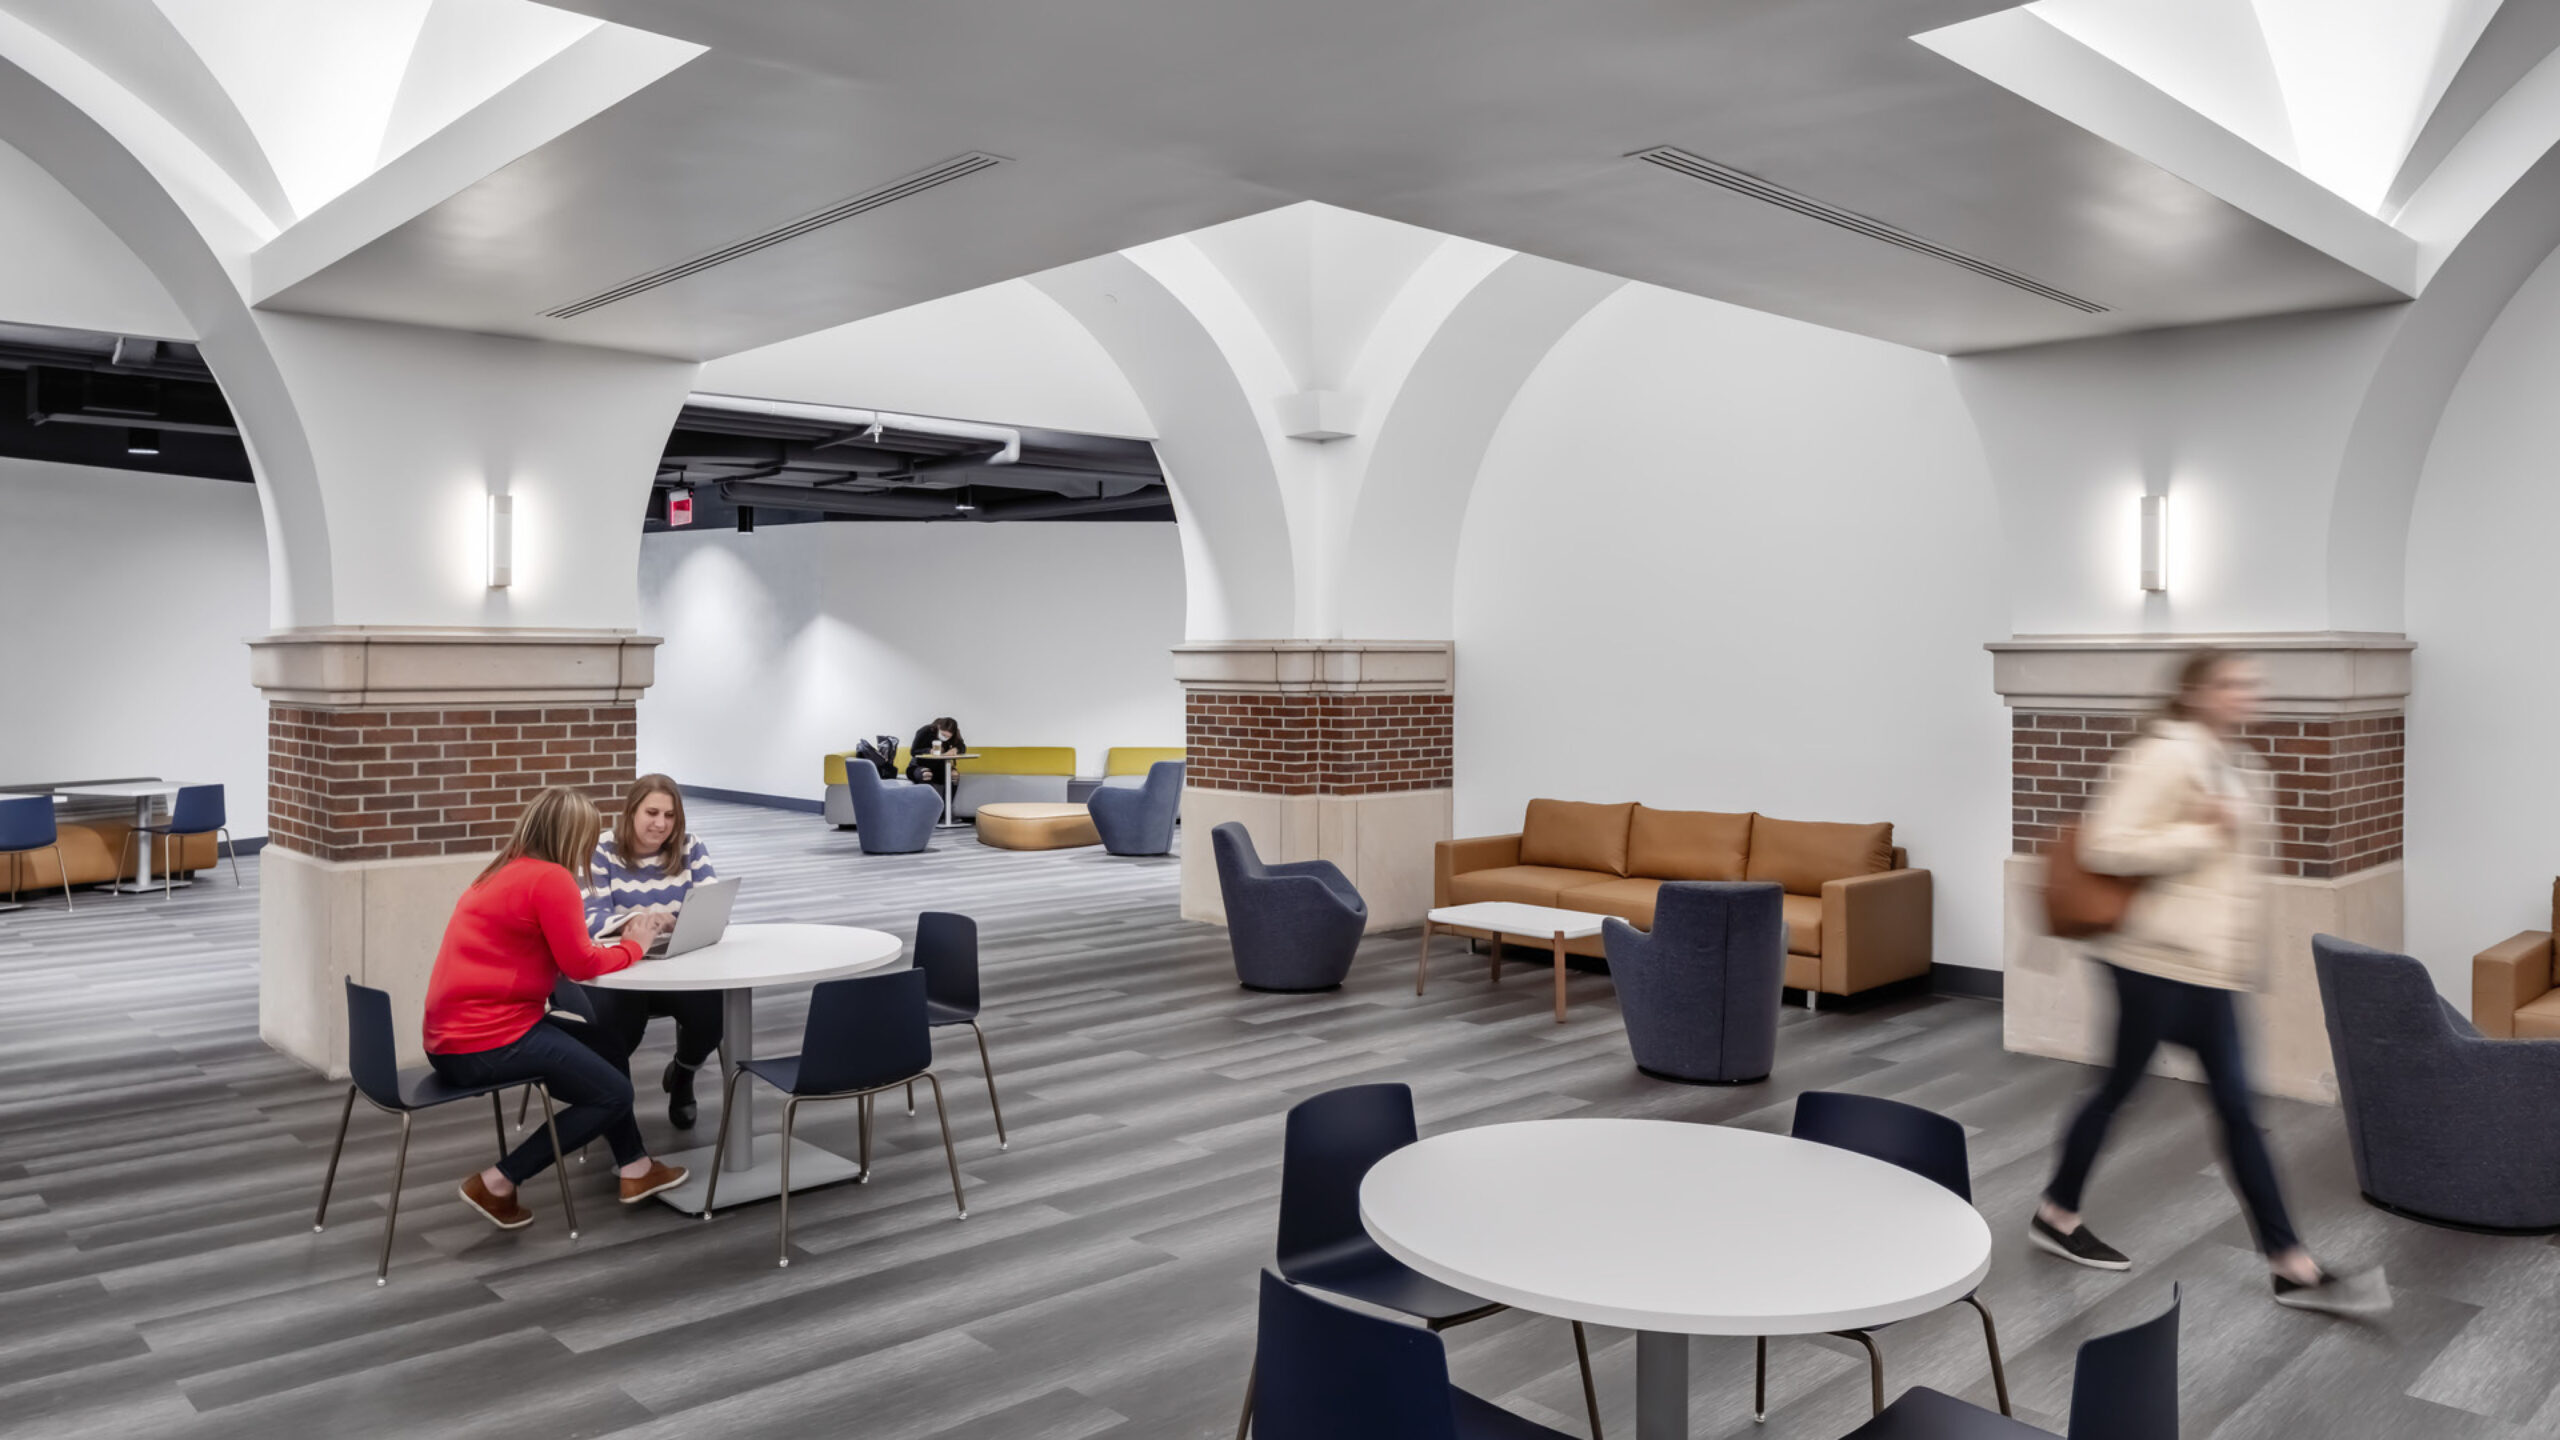 A circulation area with study spaces.